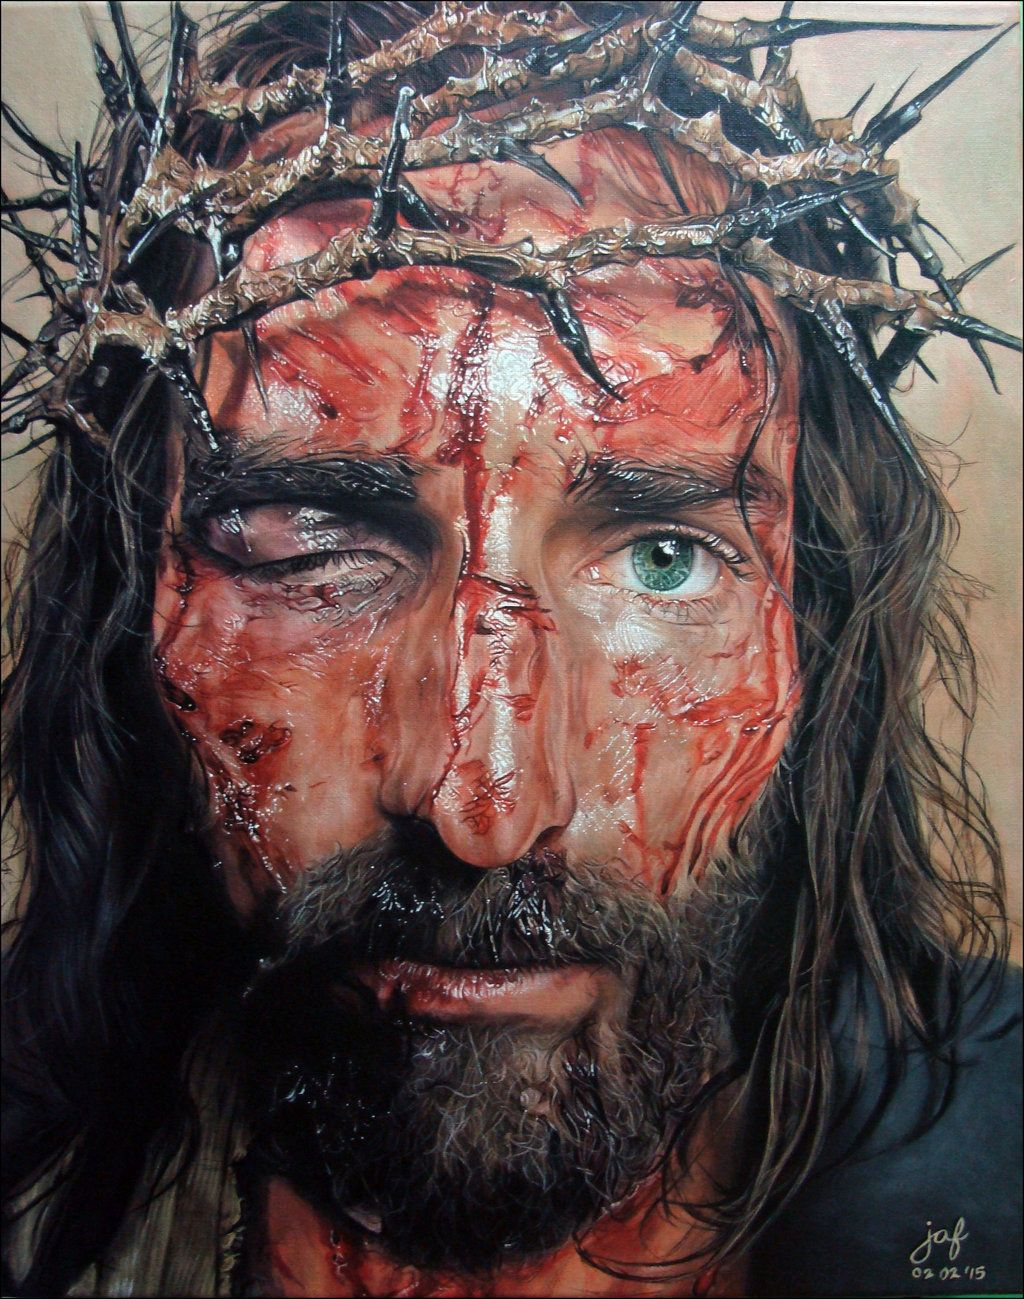 the passion of christ by jaf artwork very intense emotional the passion of christ by jaf artwork very intense emotional she said